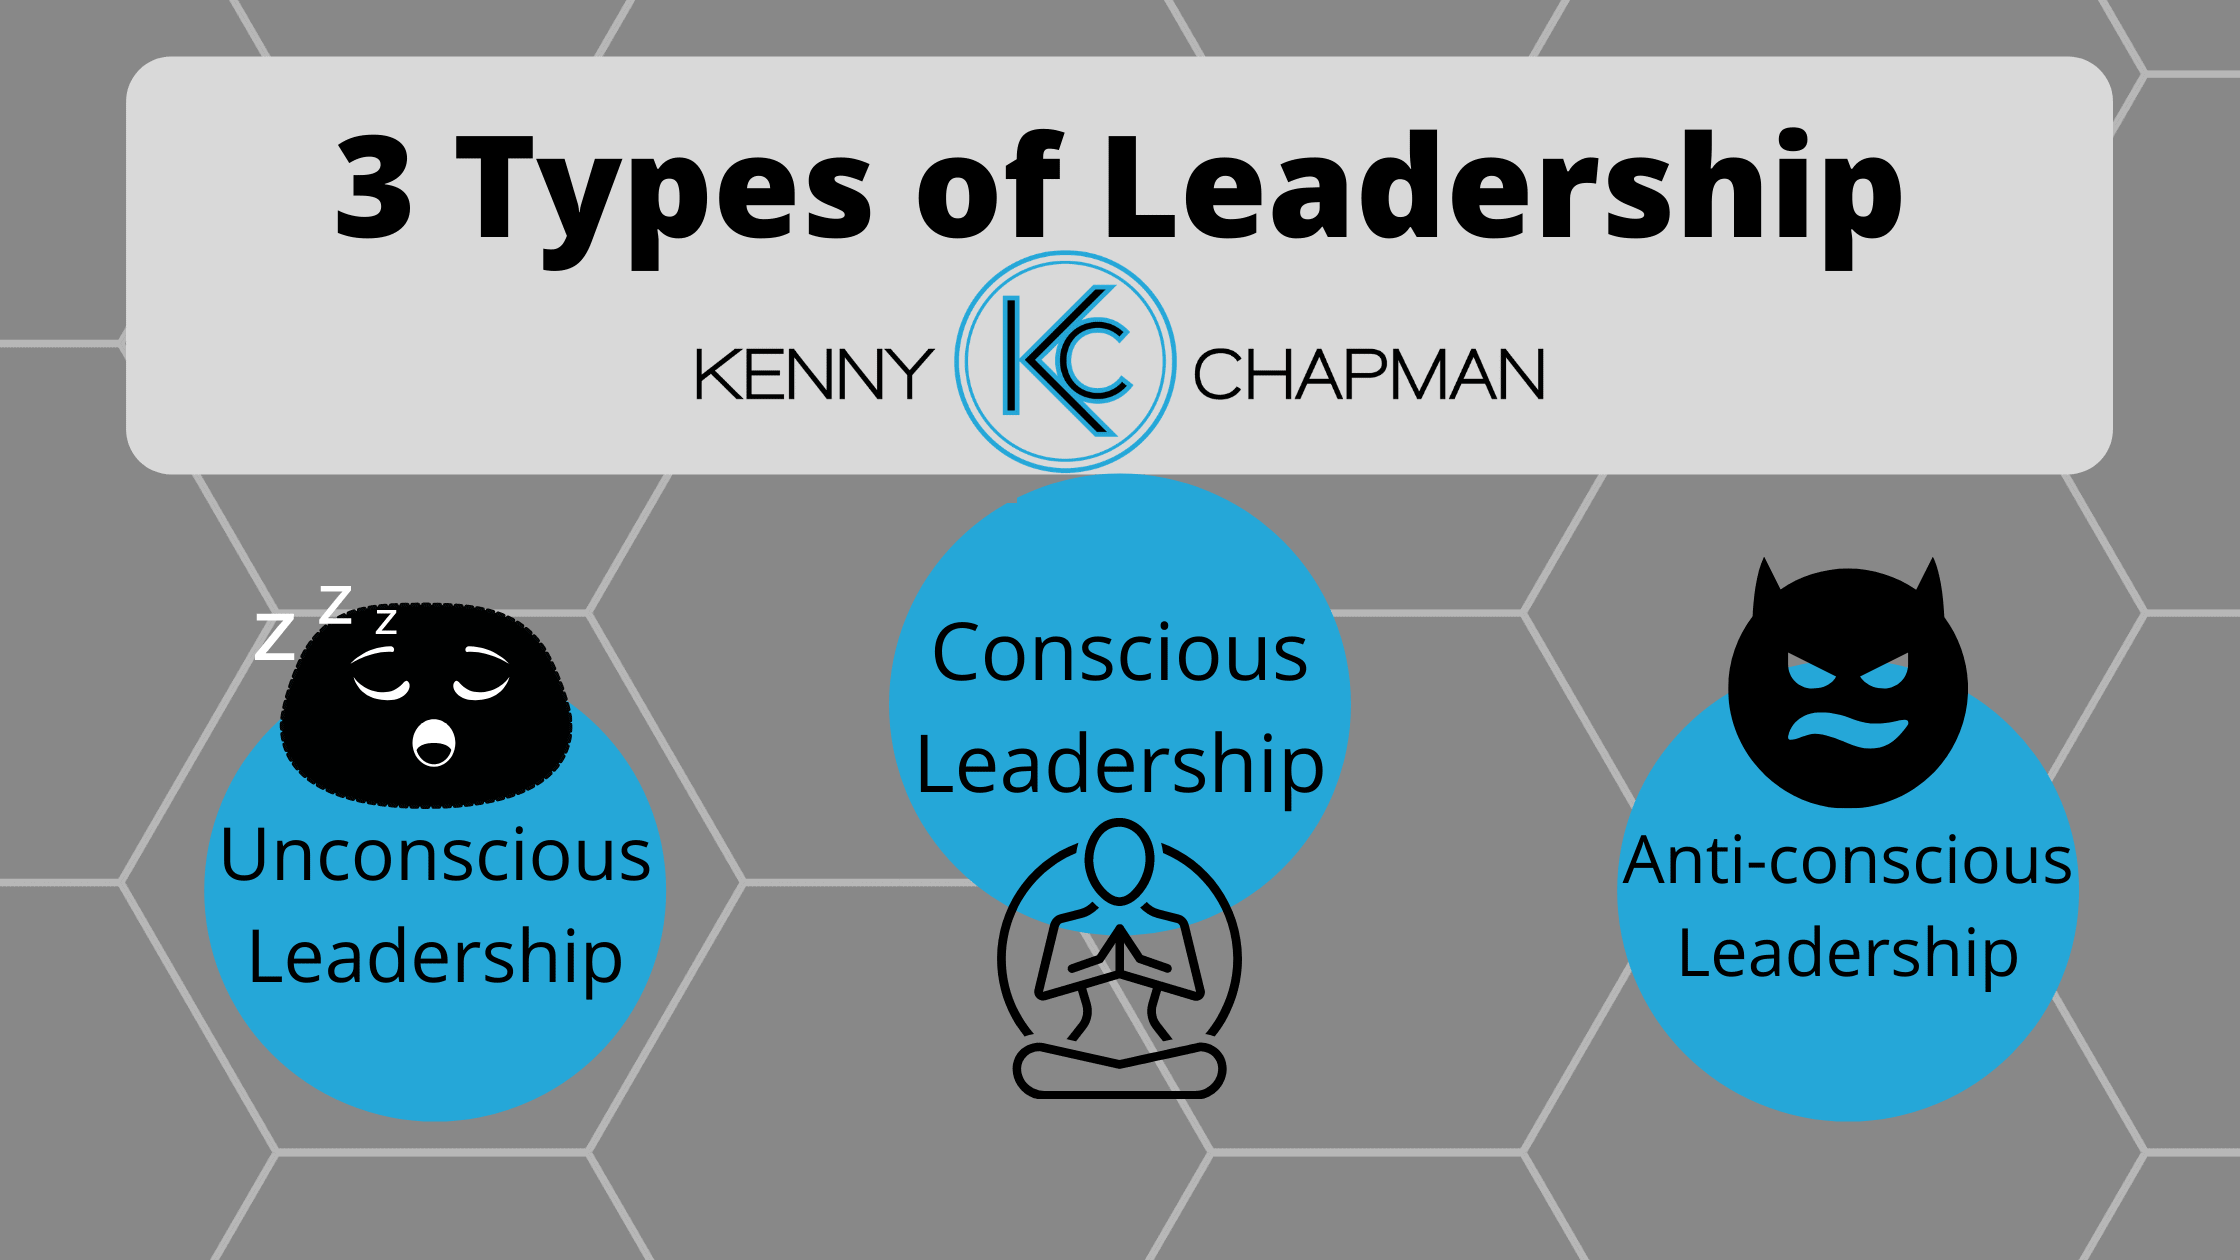 image 3 types of leadership graphic